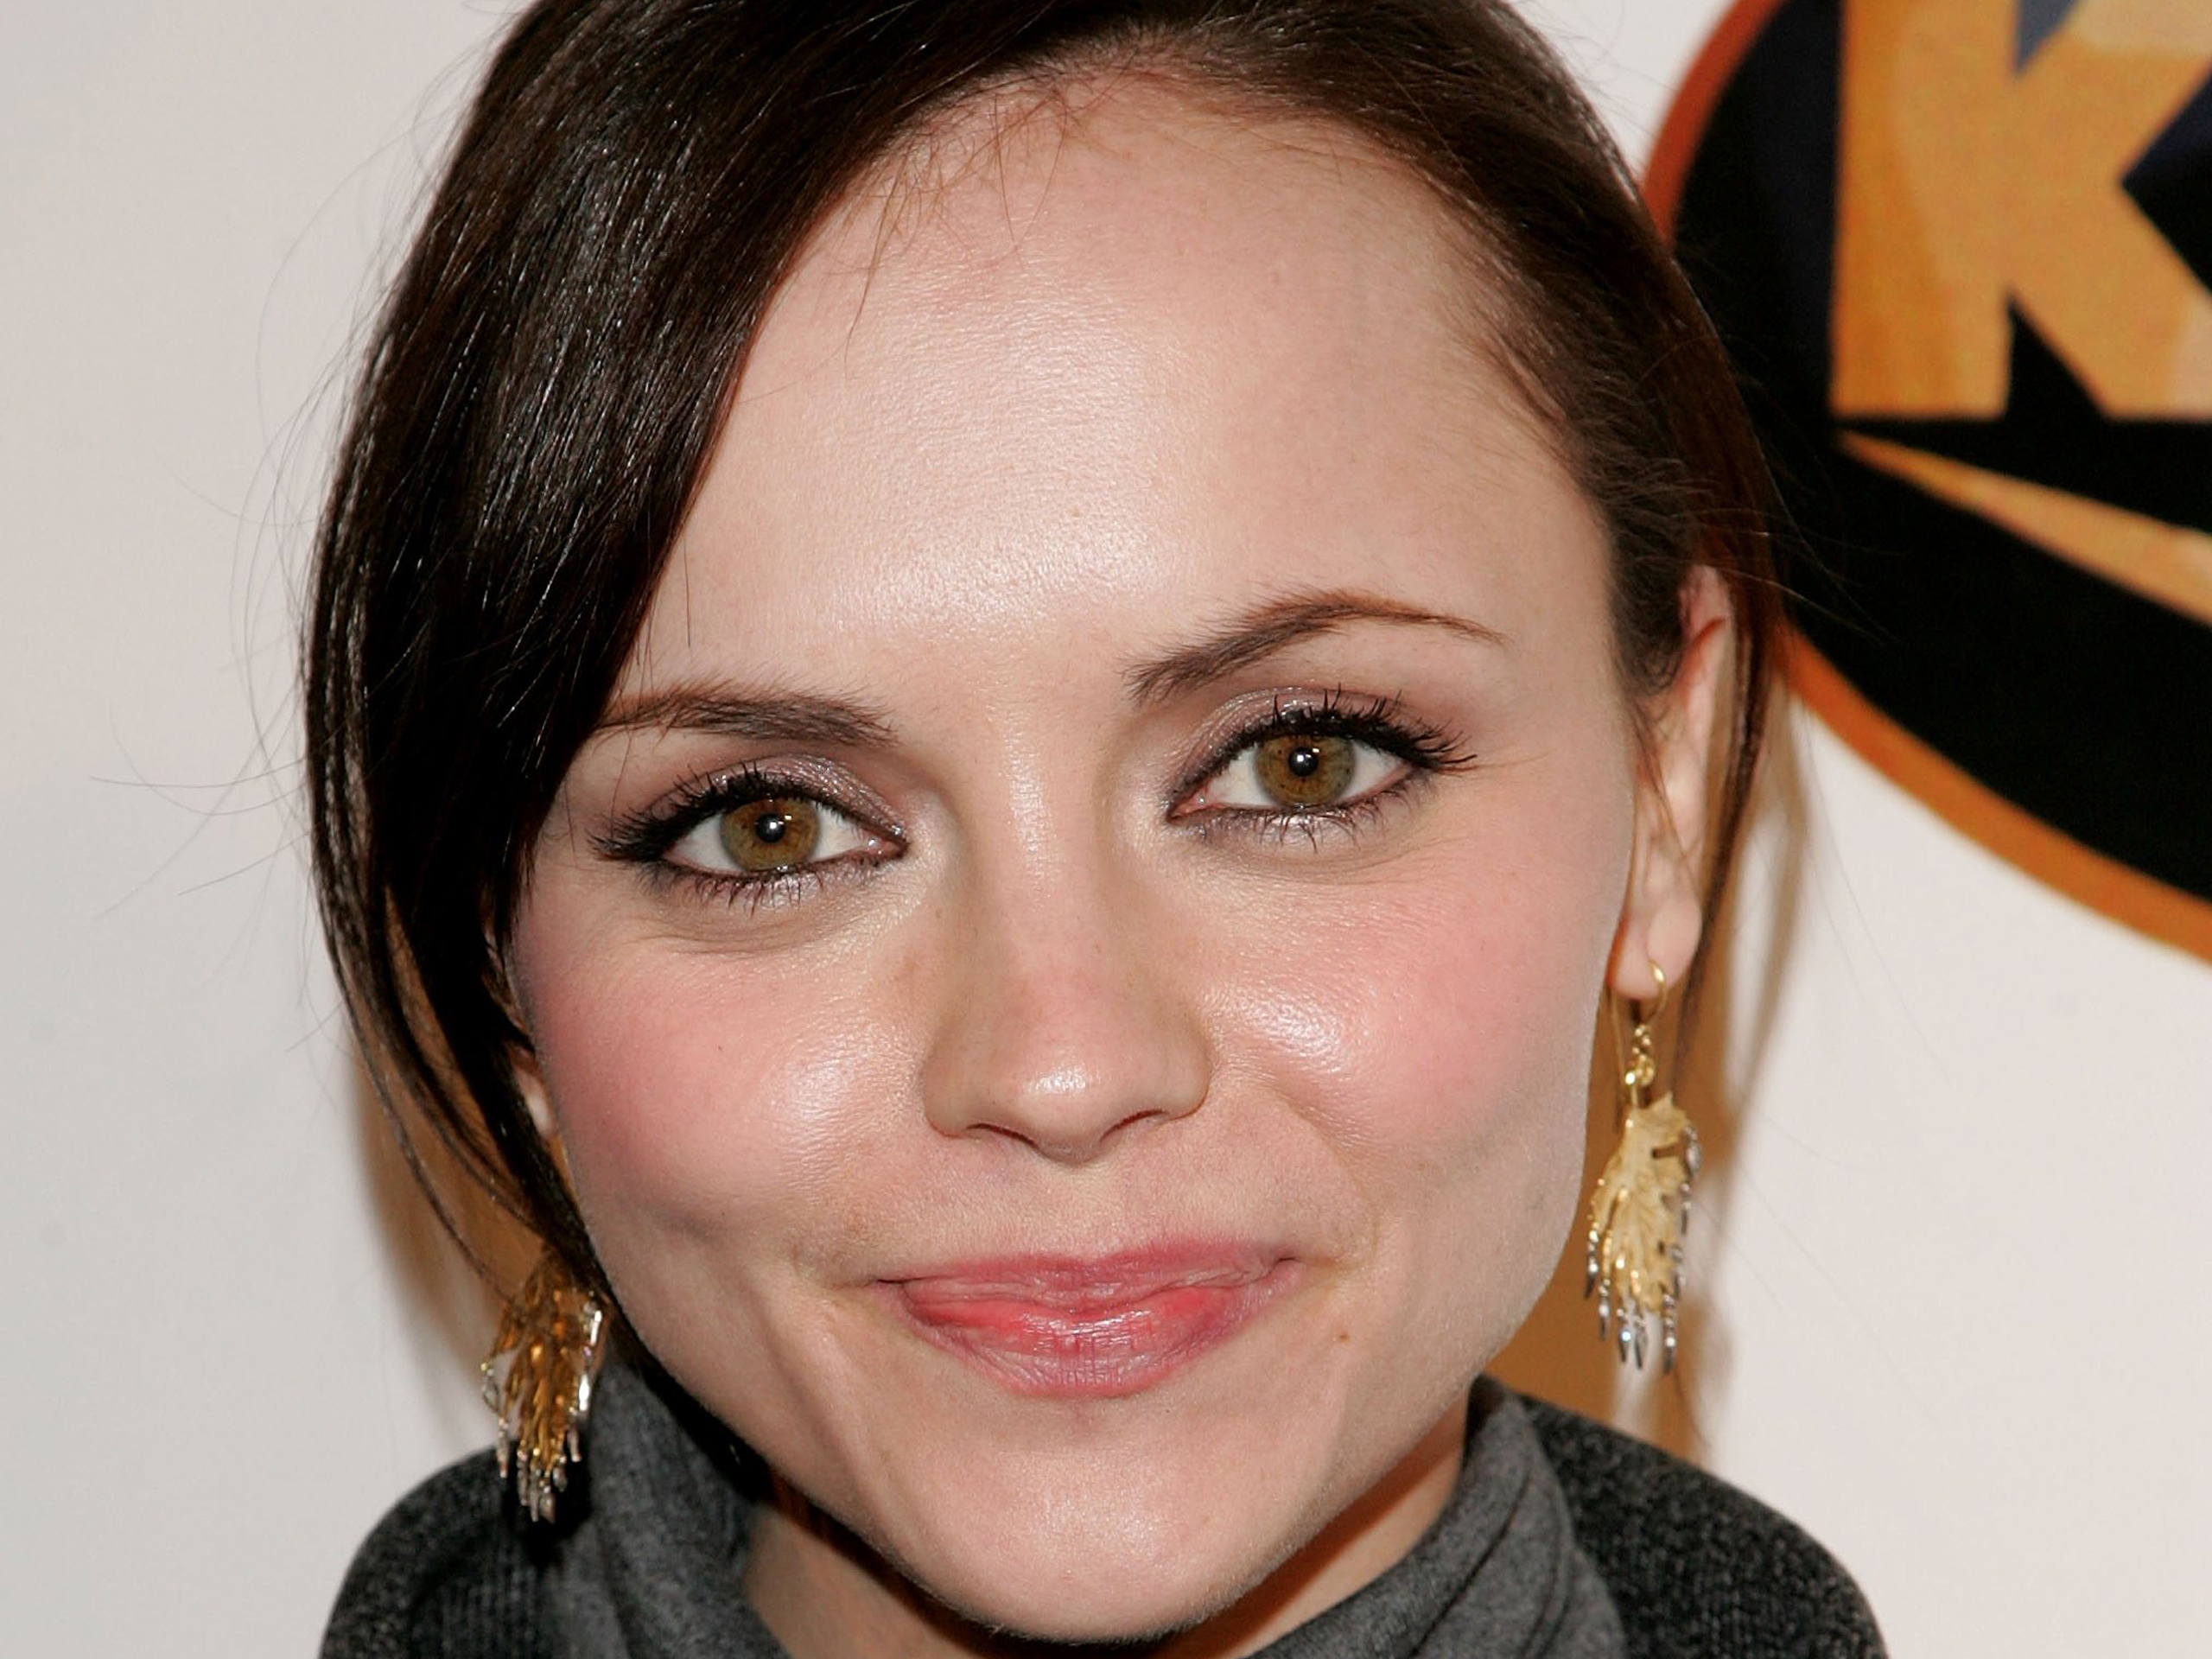 Snake Eyes Hd Wallpapers 17 Beautiful Hd Christina Ricci Wallpapers